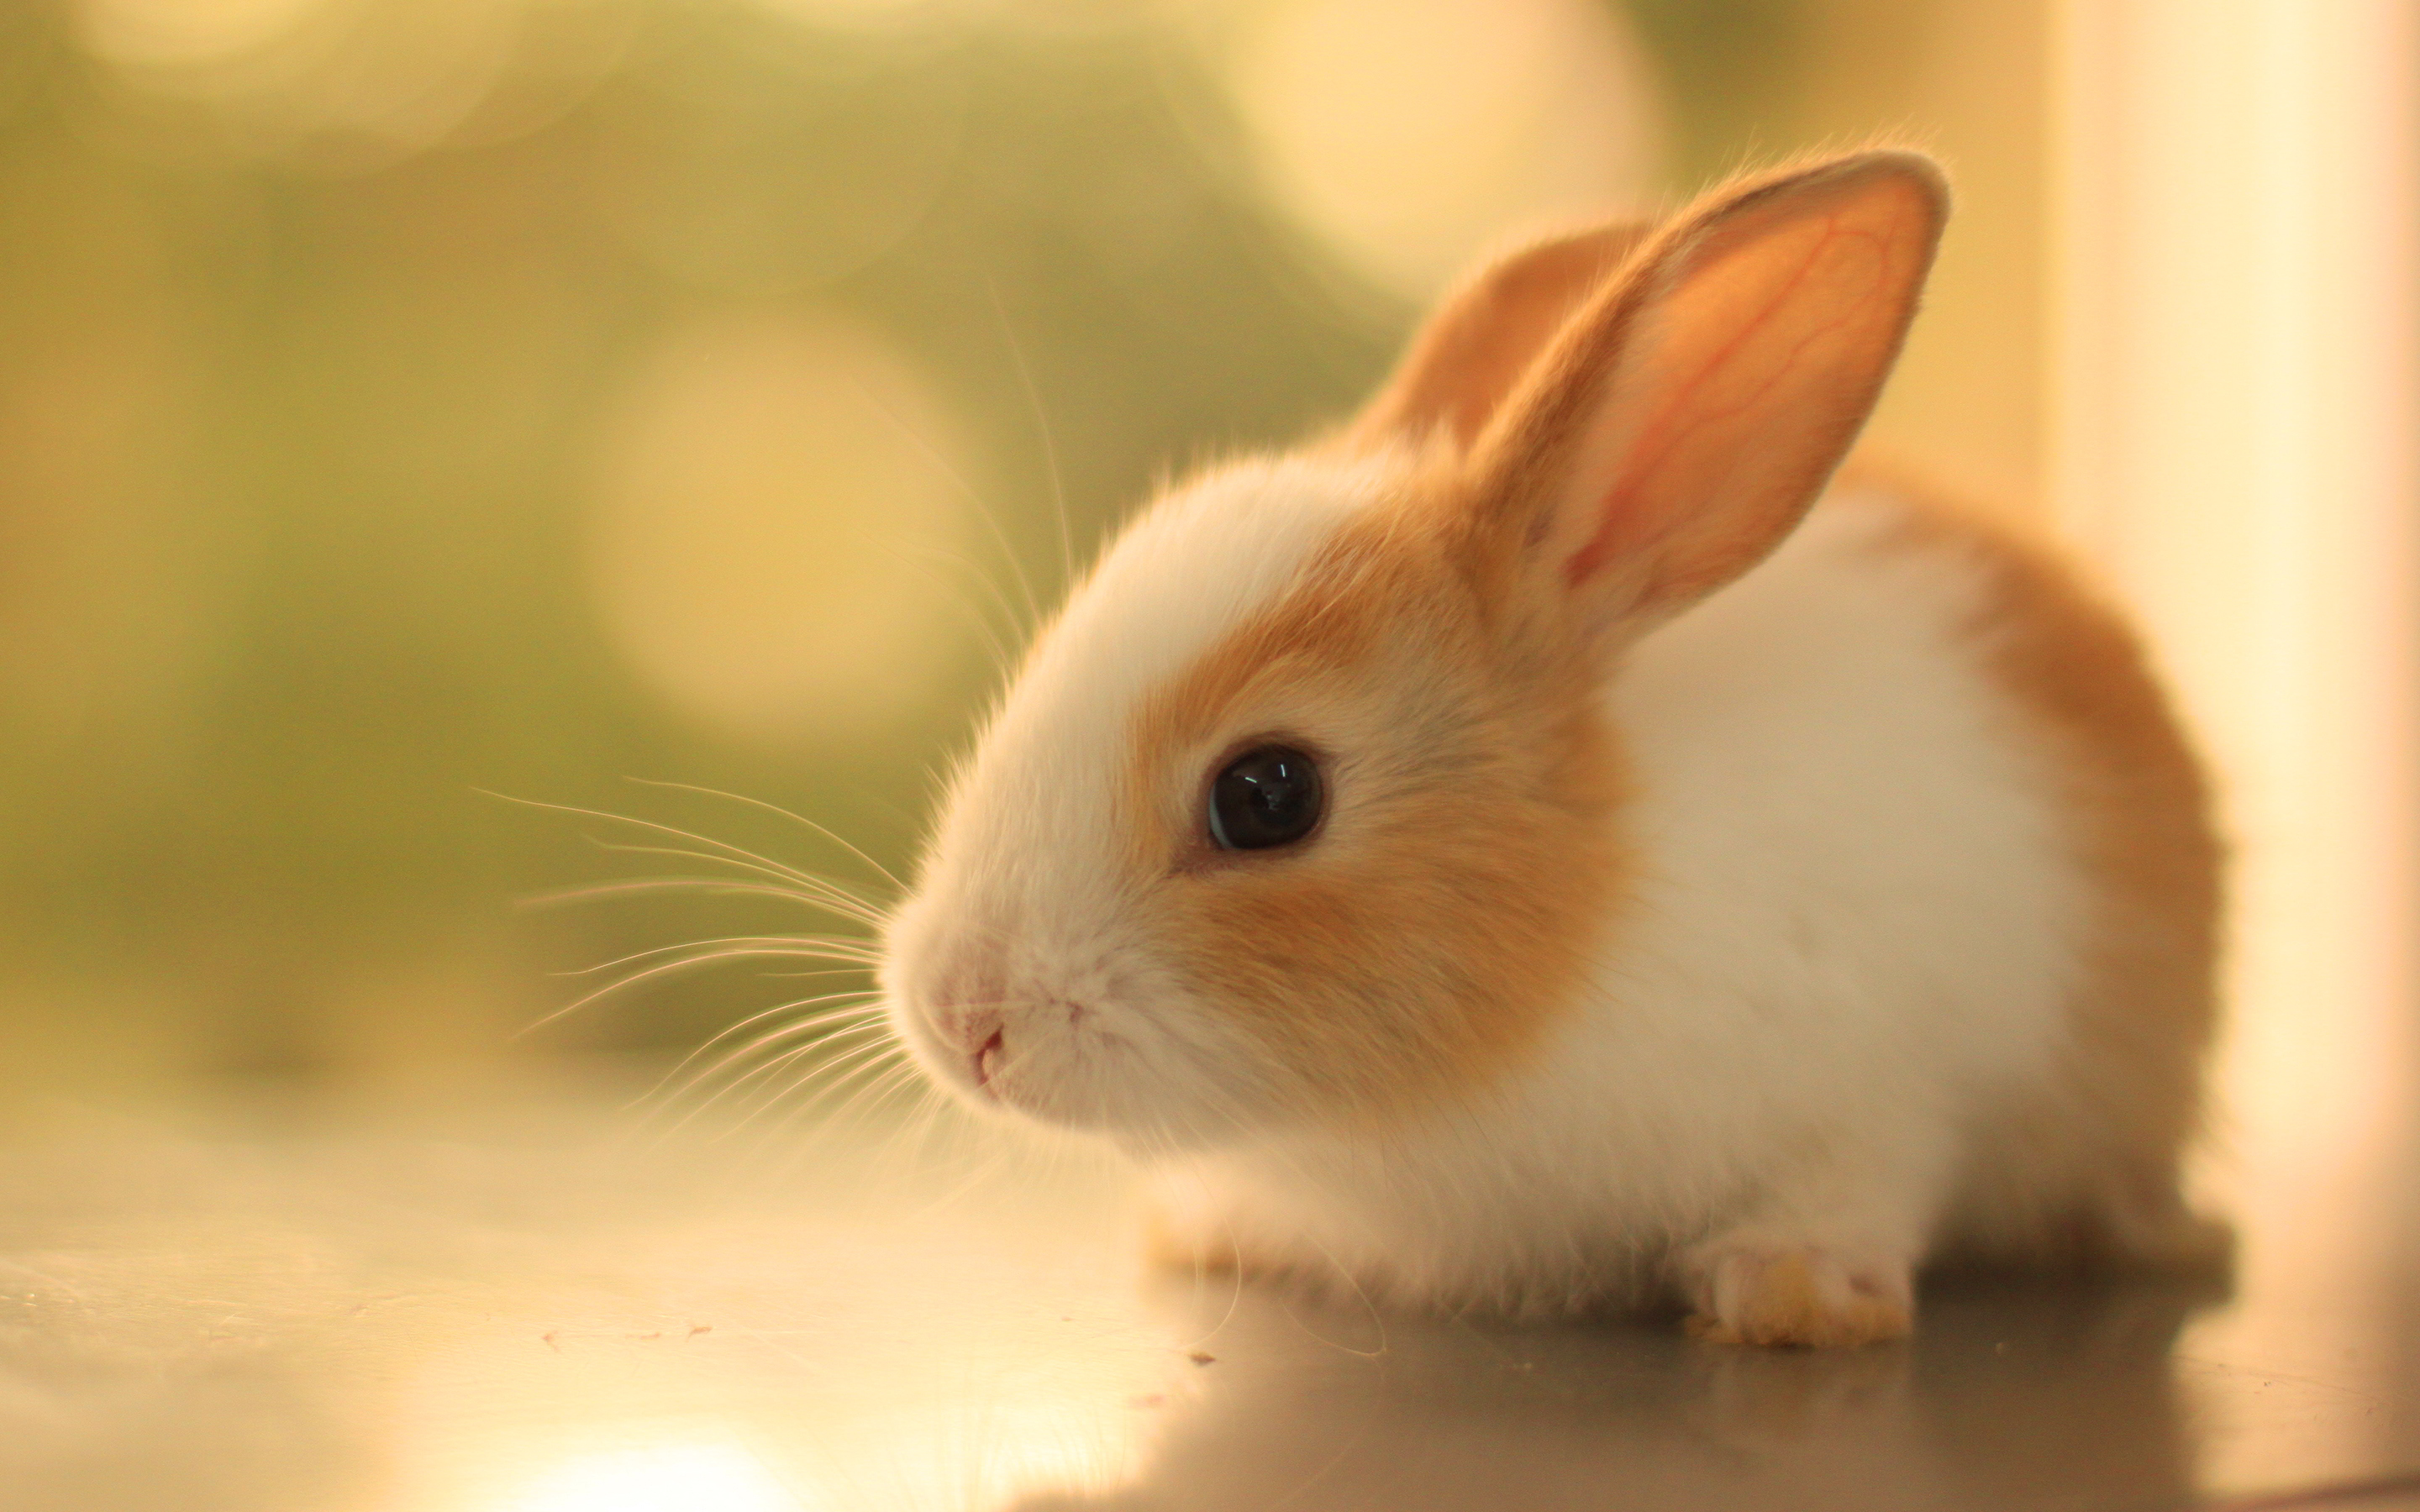 Cute rabbit hd